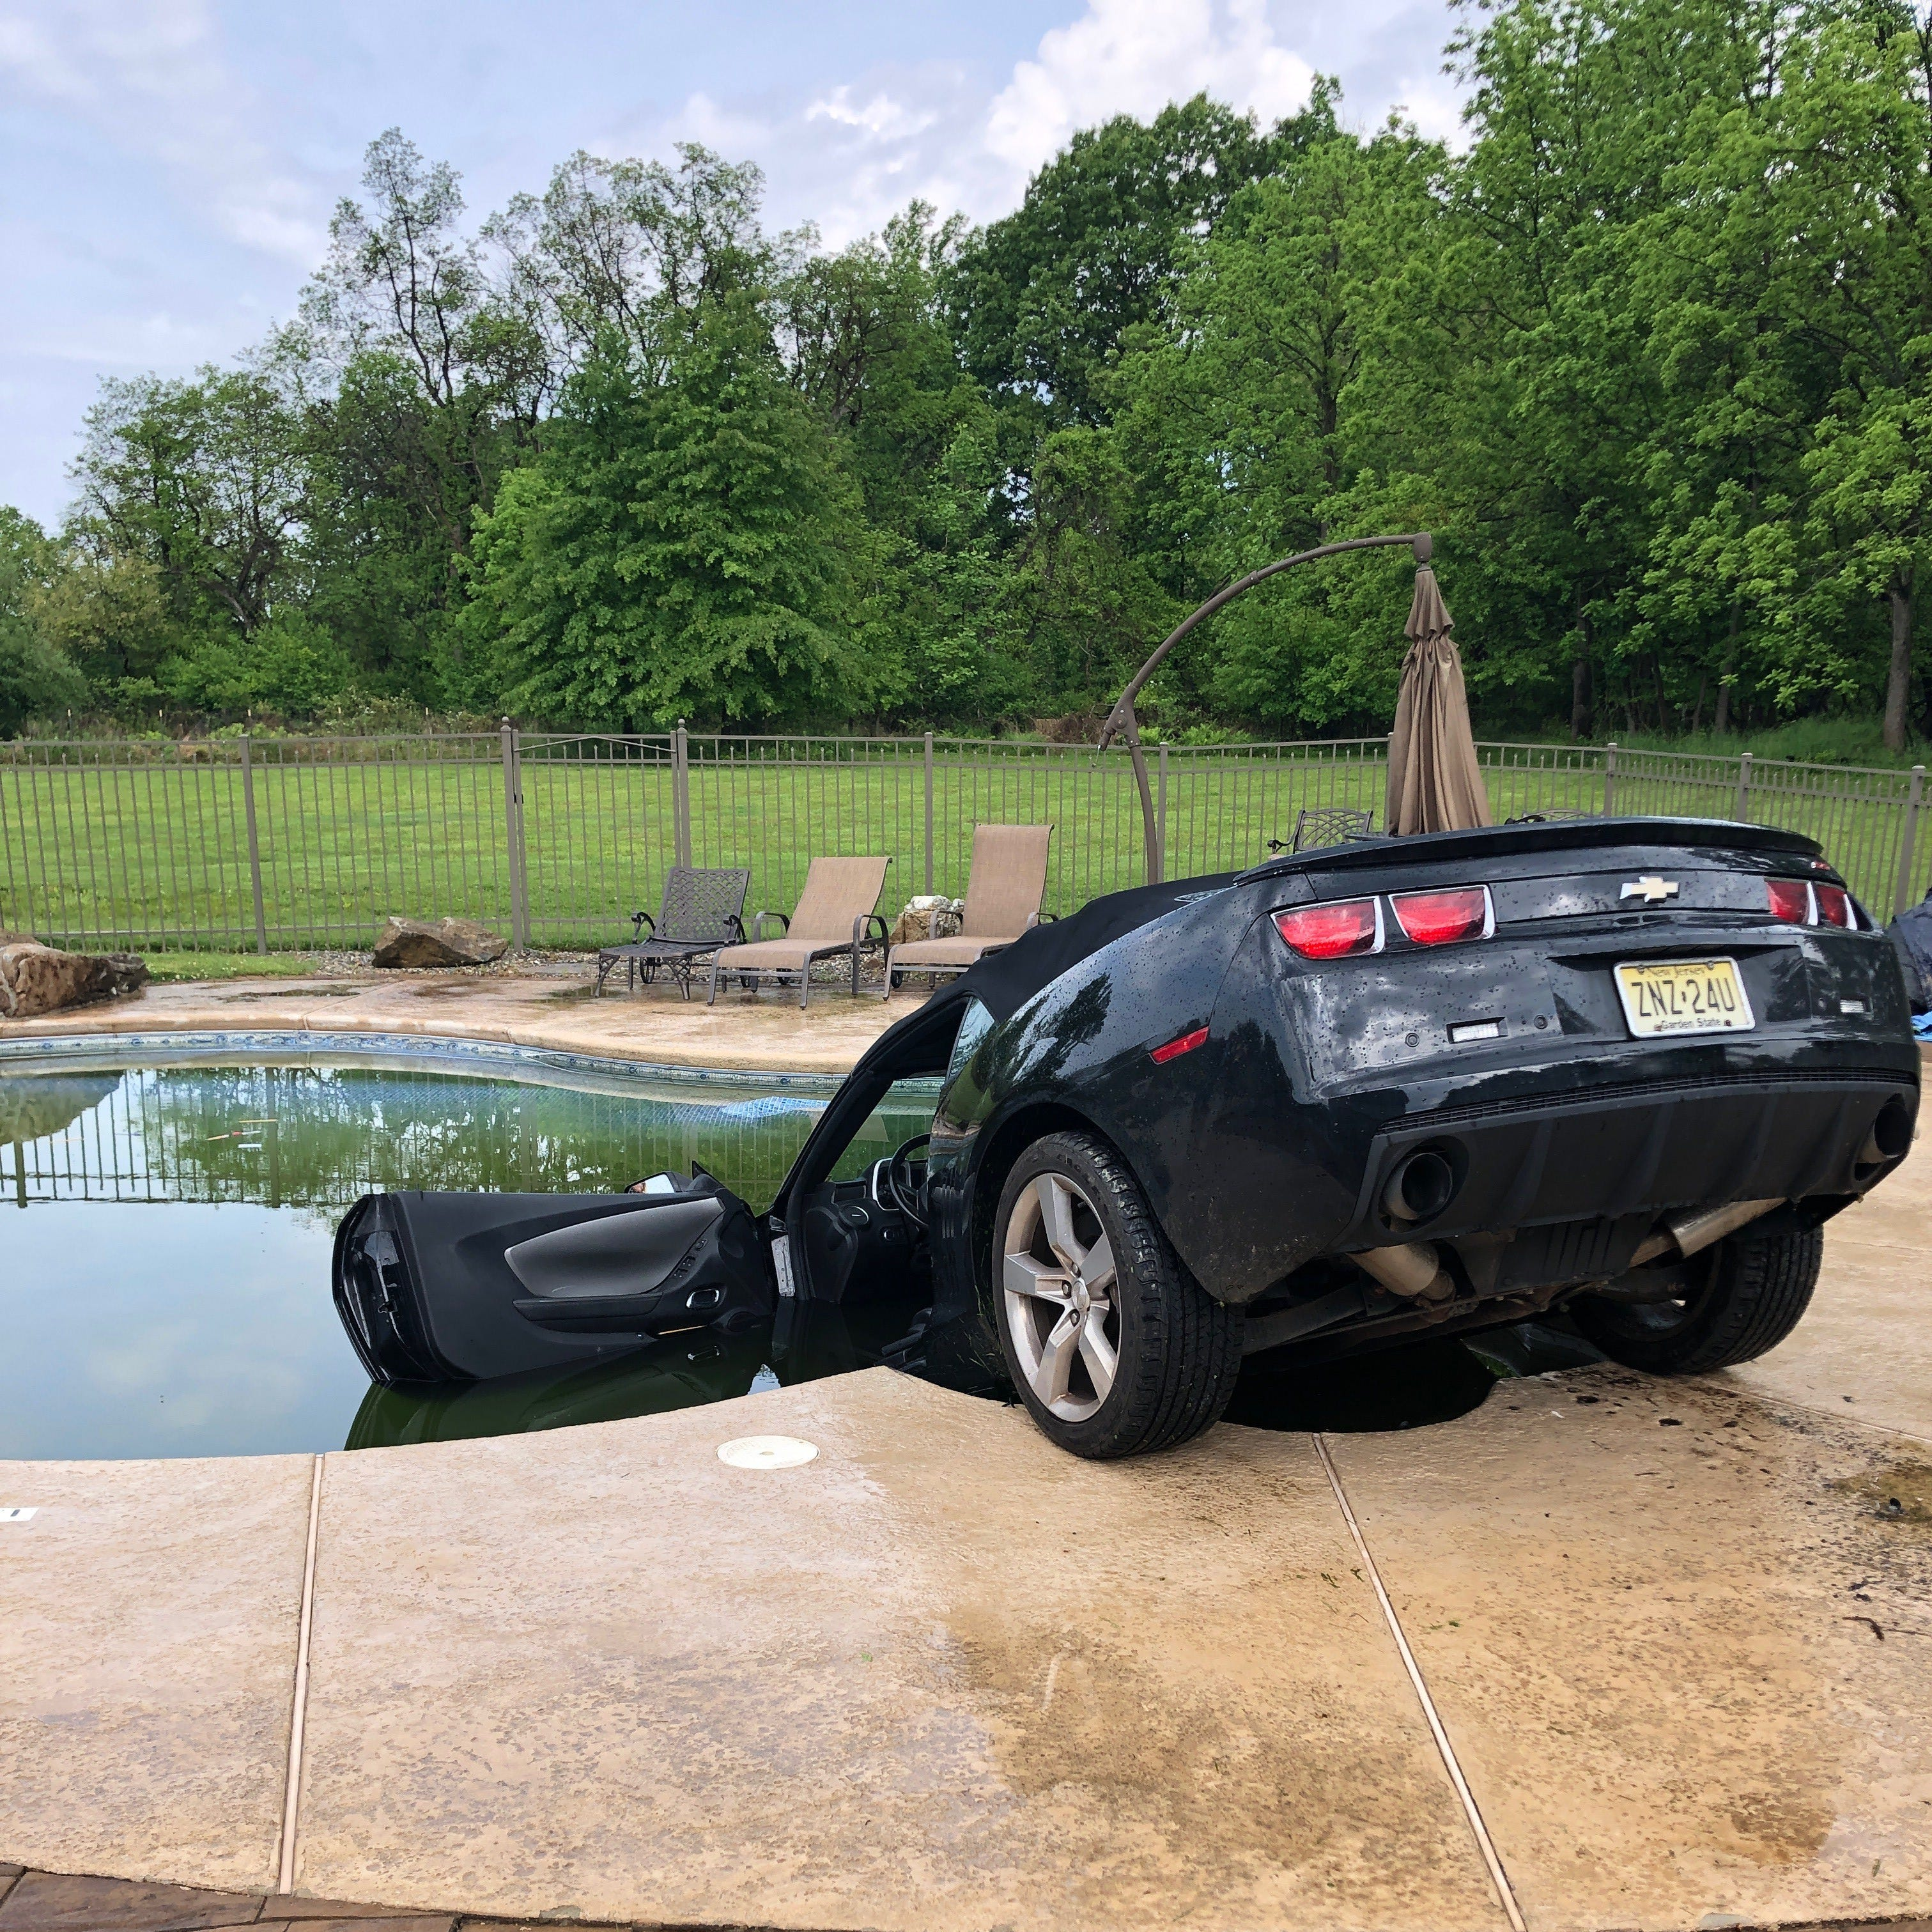 Readington man drives car into swimming pool